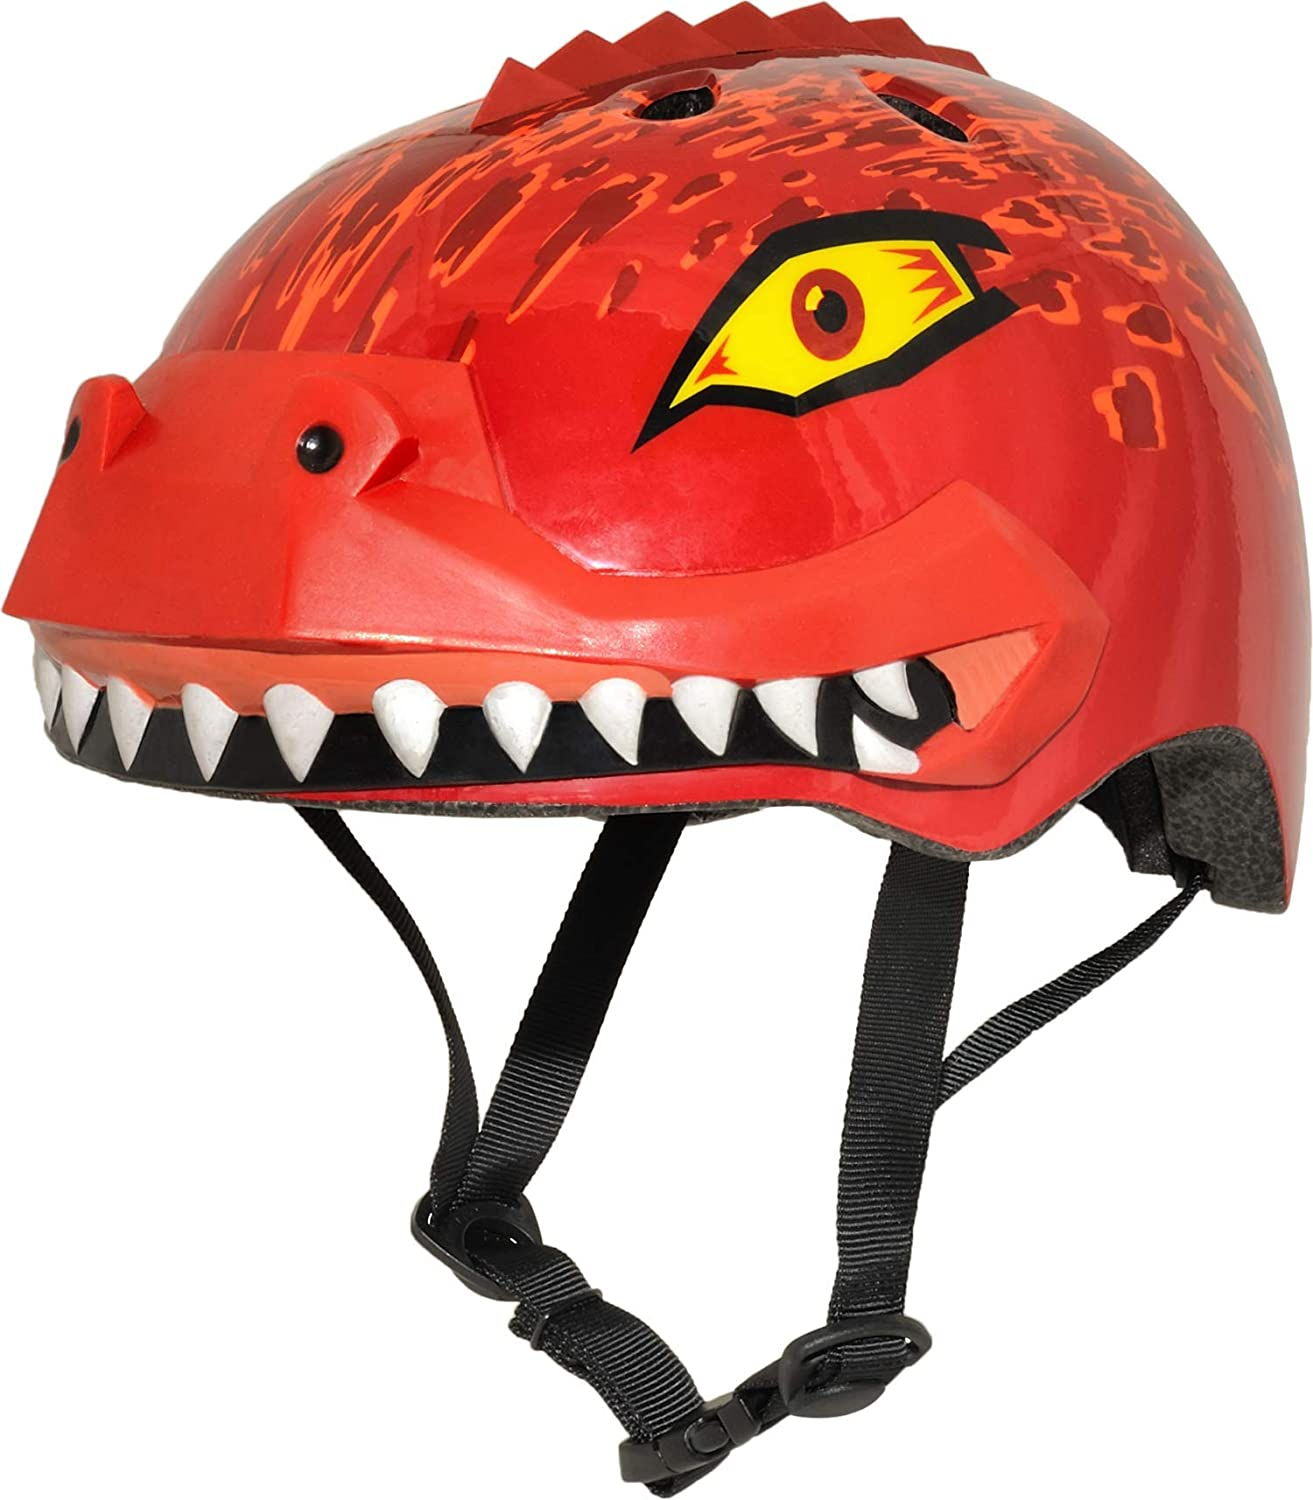 Raskullz 3D Characters Child and Toddler Bike Helmets 1110003-Red-5-PARENT